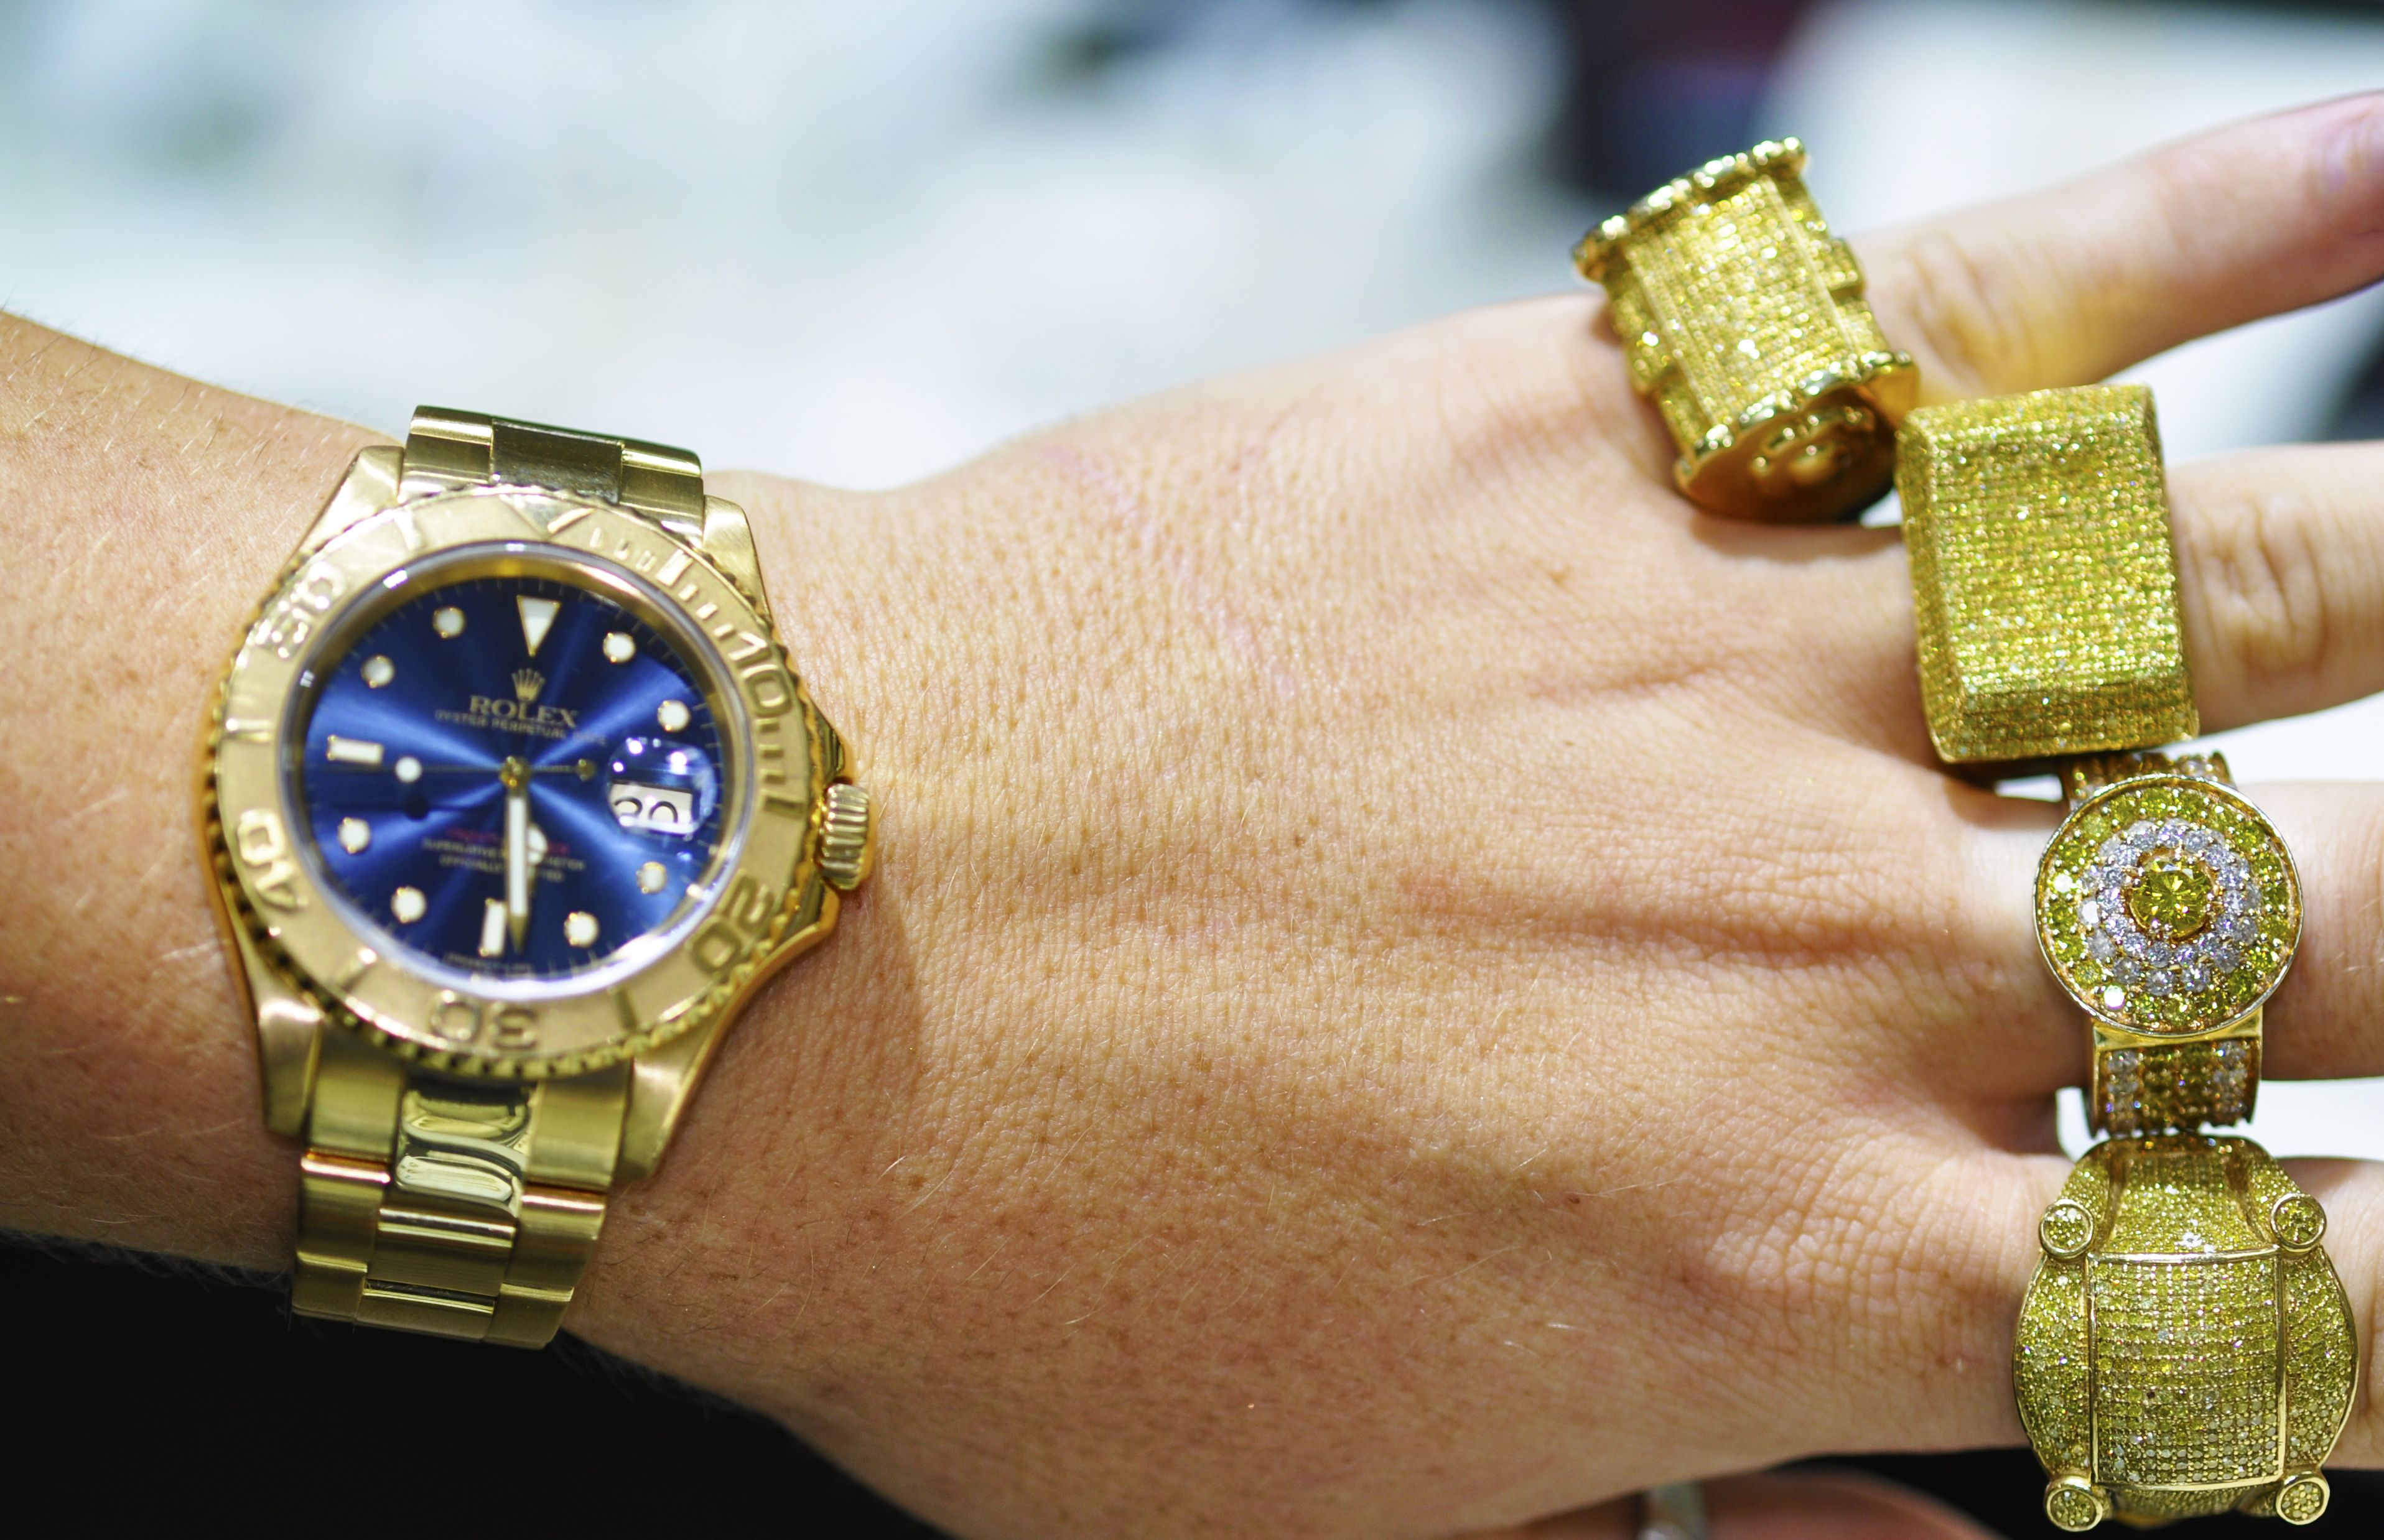 #MCM Who has a man with the swag in their style to wear ring bling with their ROLEX!? bit.ly/1y5HvKX